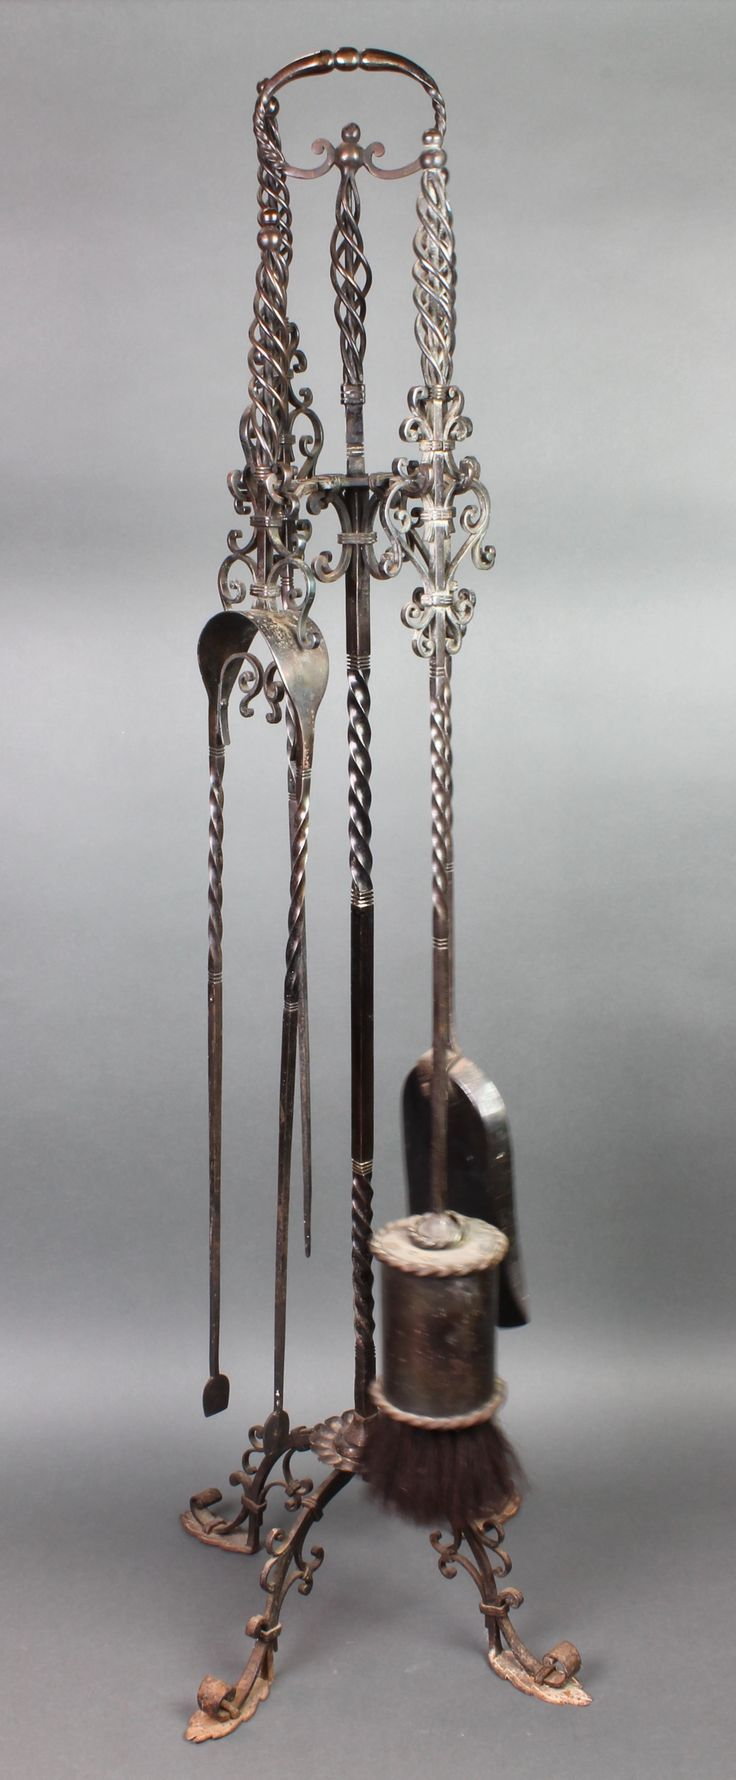 Lot 189, A wrought iron 4 piece fireside companion set comprising shovel, poker and tongs, sold for  £100